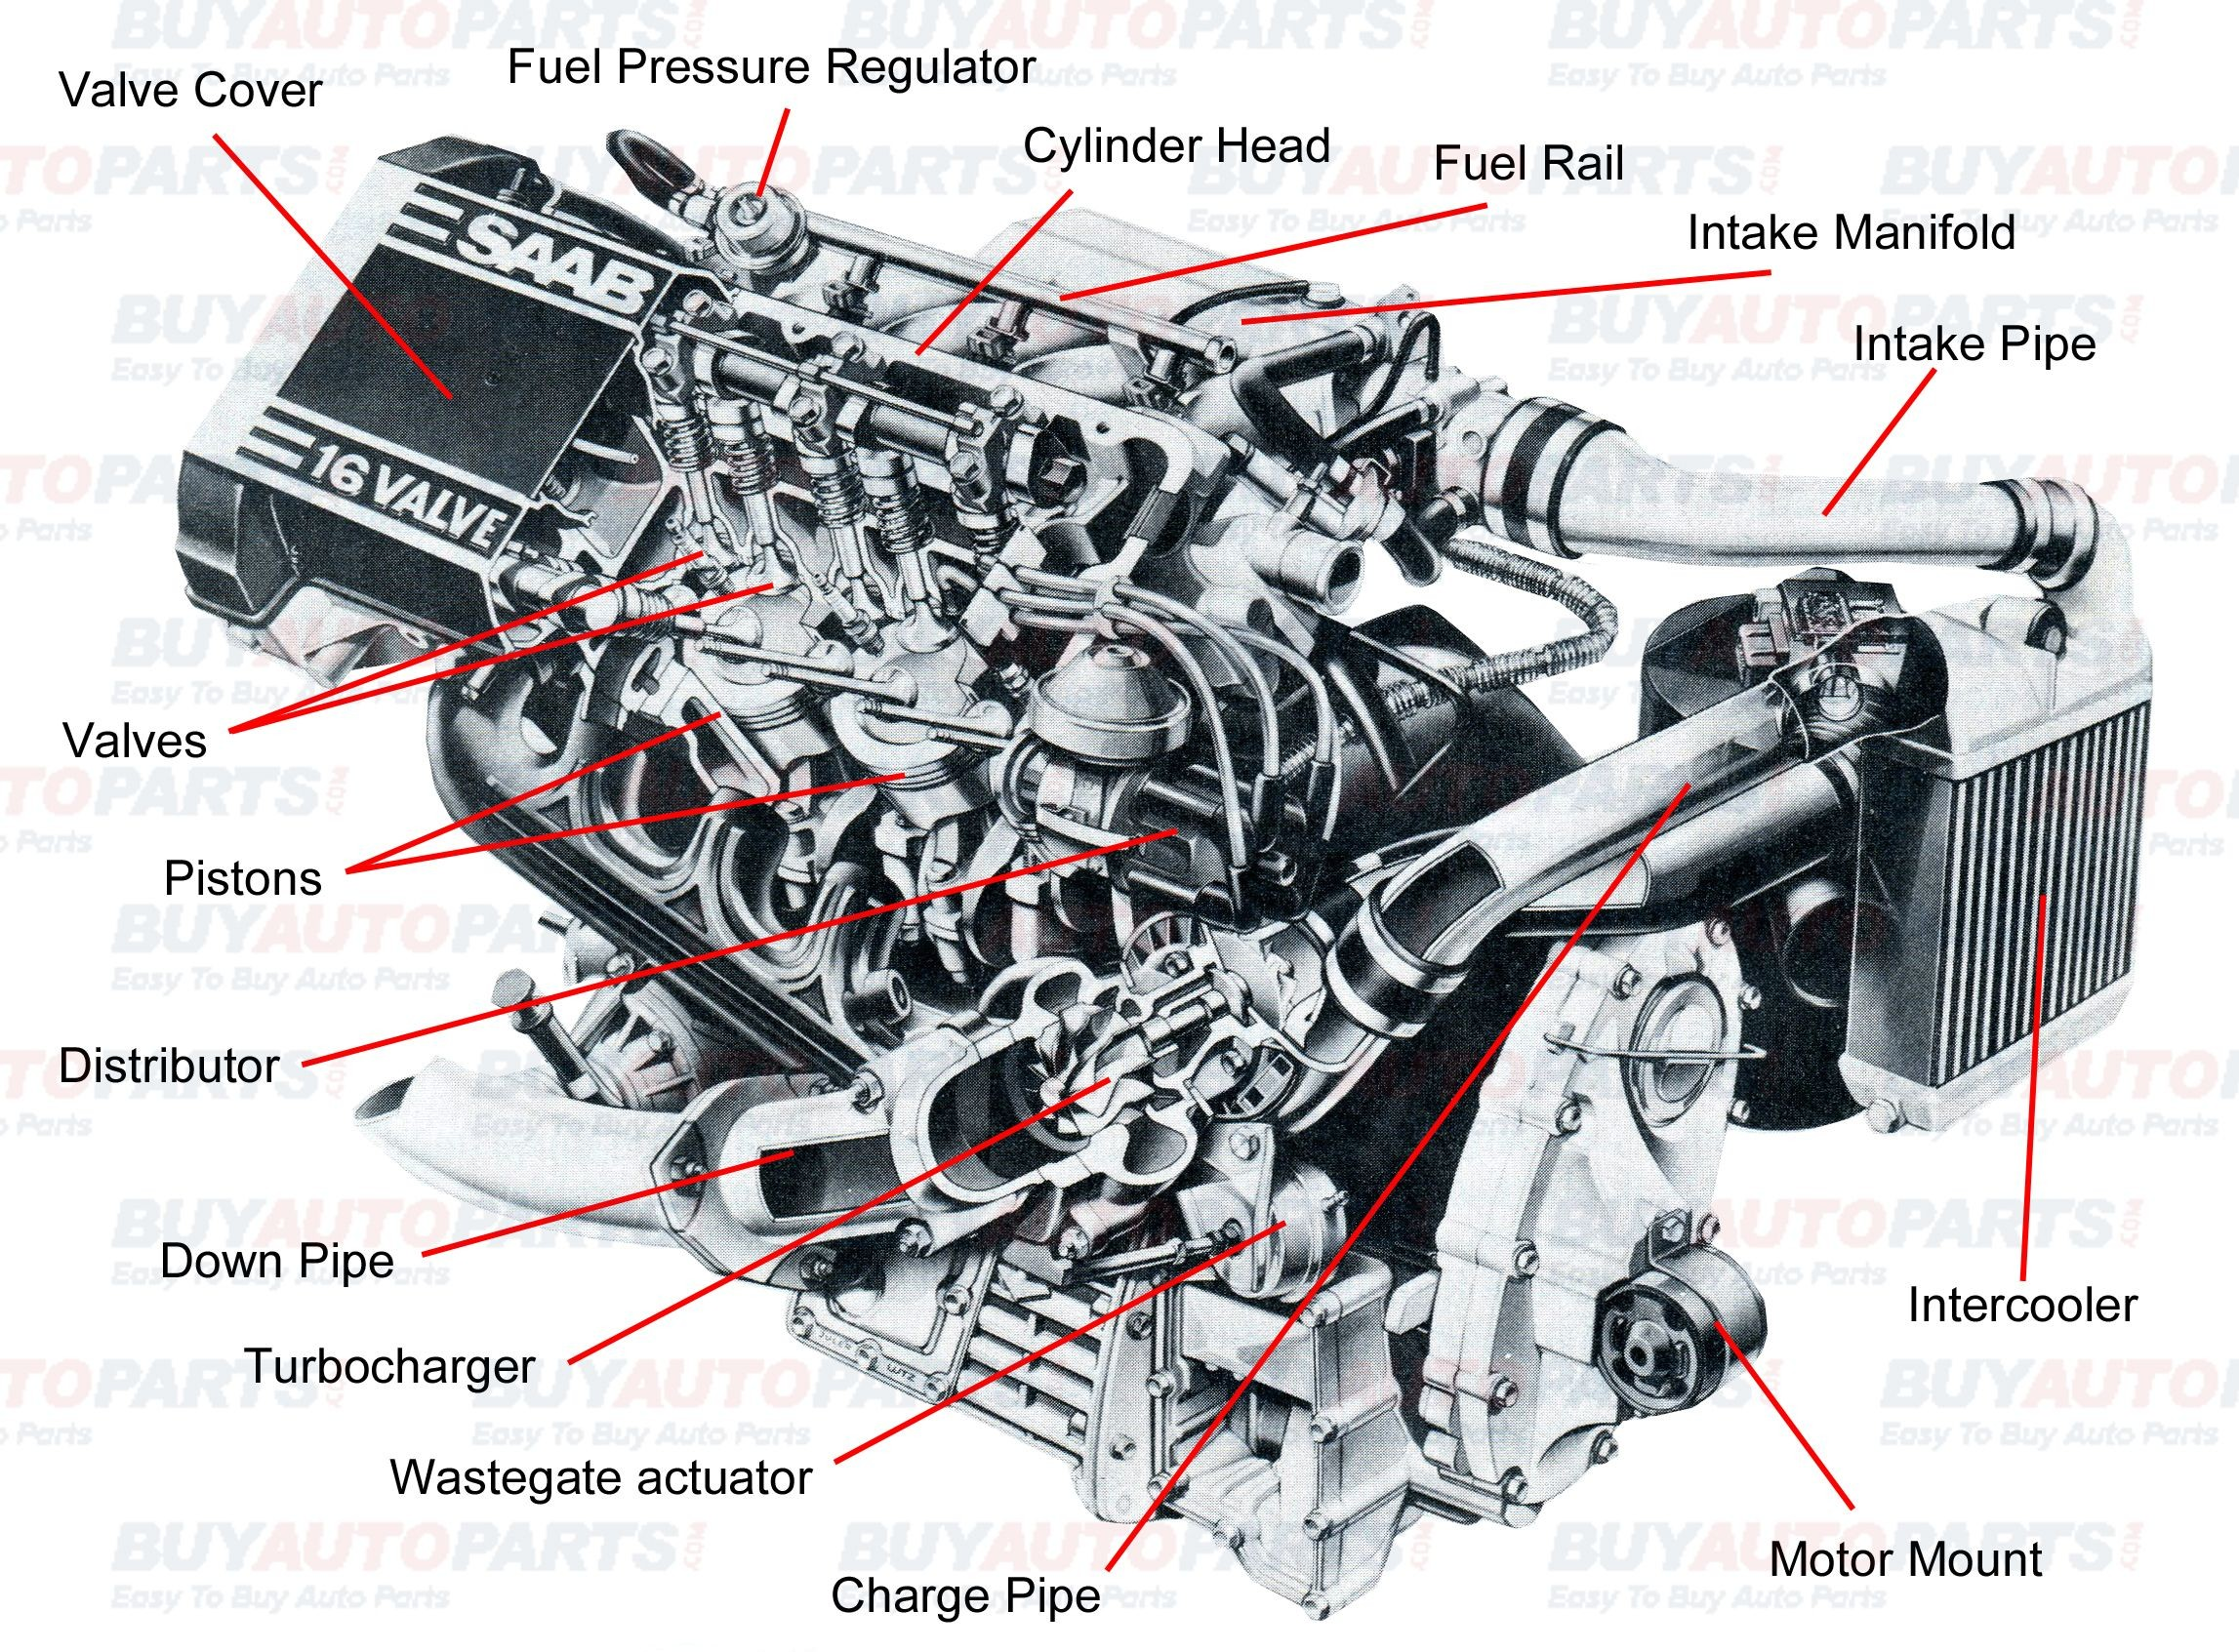 Car Engine Parts with Diagram Pin by Jimmiejanet Testellamwfz On What Does An Engine with Turbo Of Car Engine Parts with Diagram